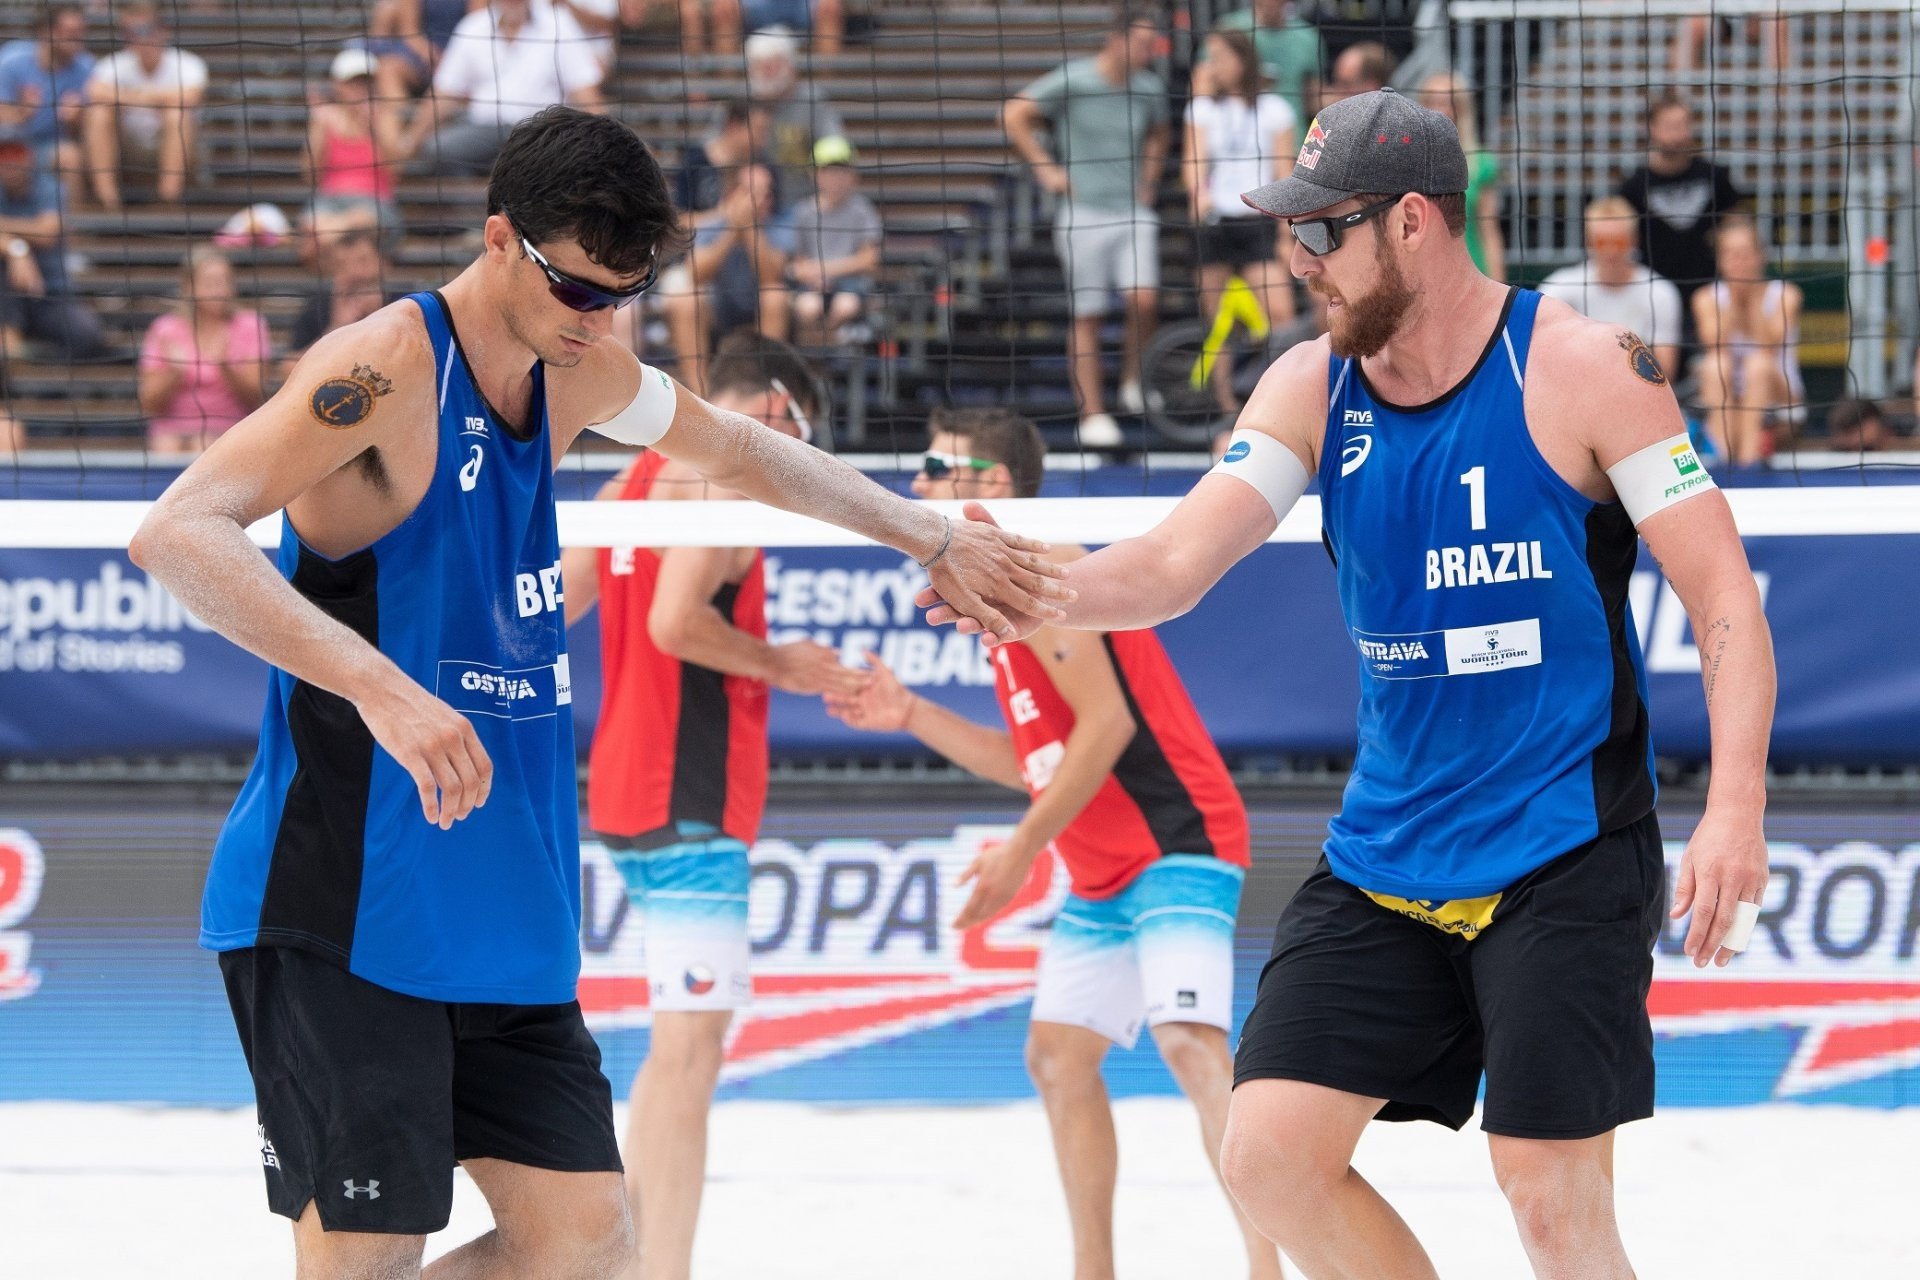 After a win in their debut, Alison and Andre struggled with back-to-back setbacks (Photocredit: FIVB)